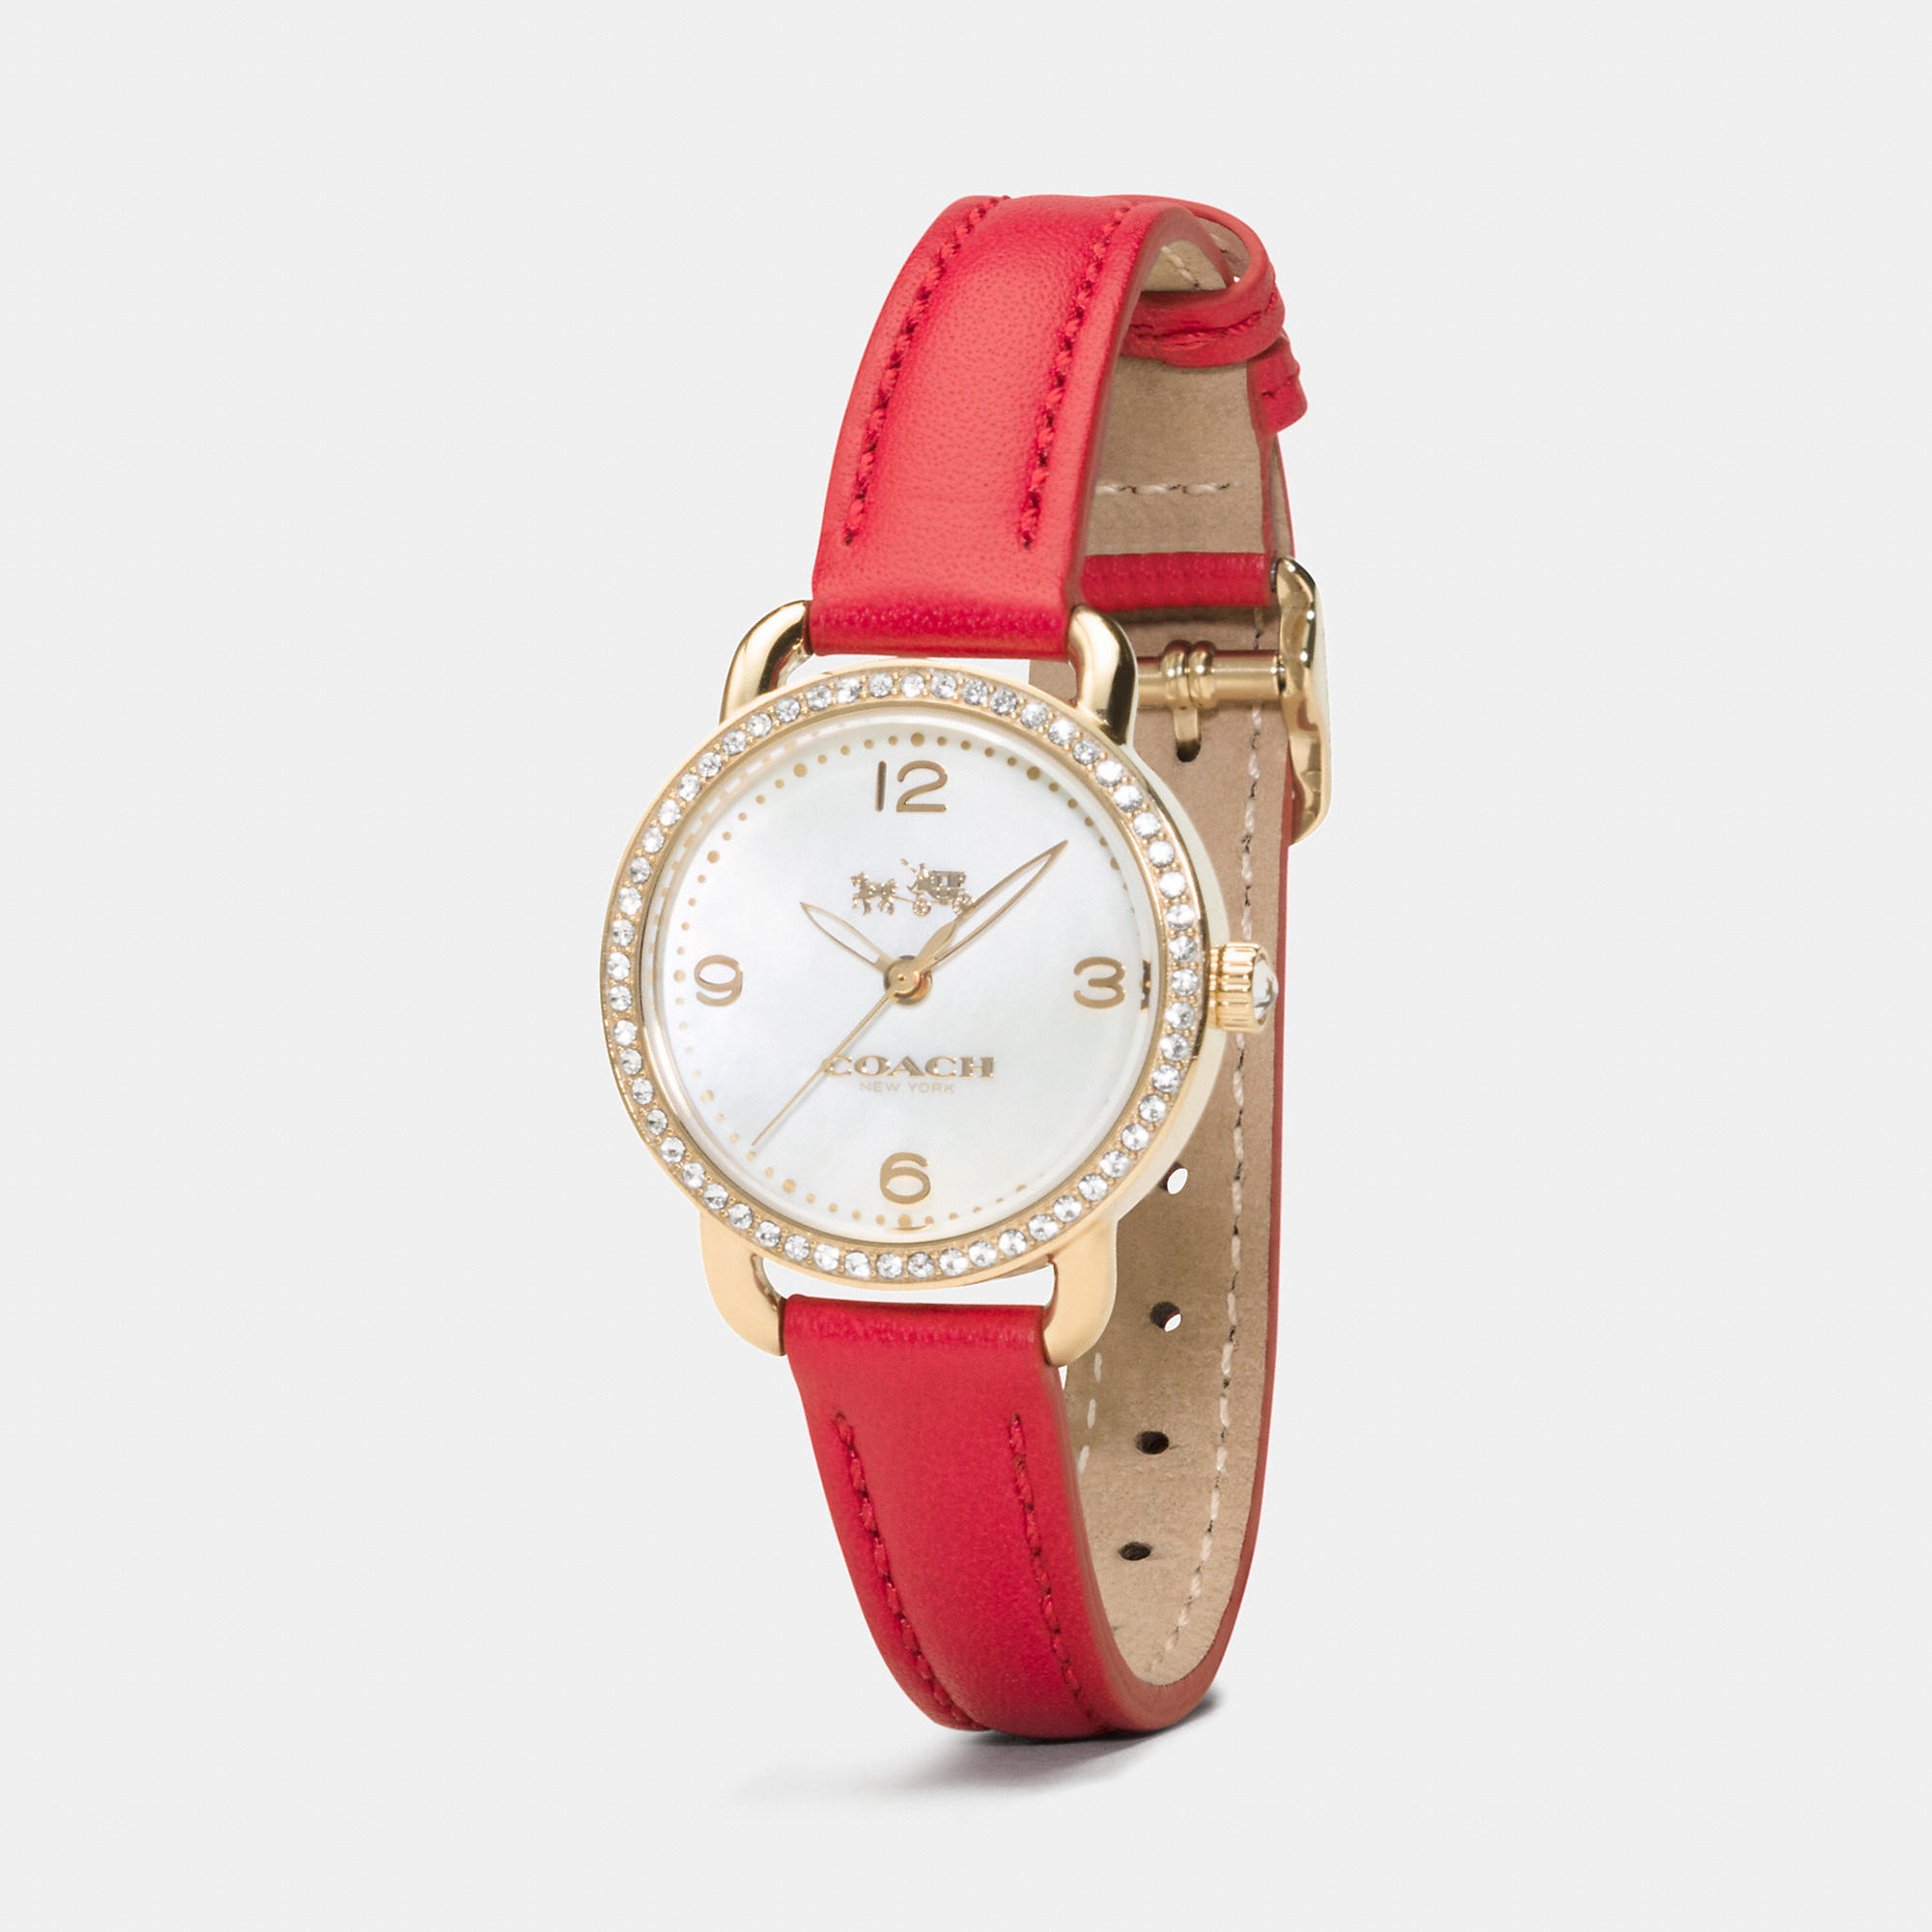 red by watches watch petite women products s rd thin with inspired eva dial leather tokyobay womens style vintage